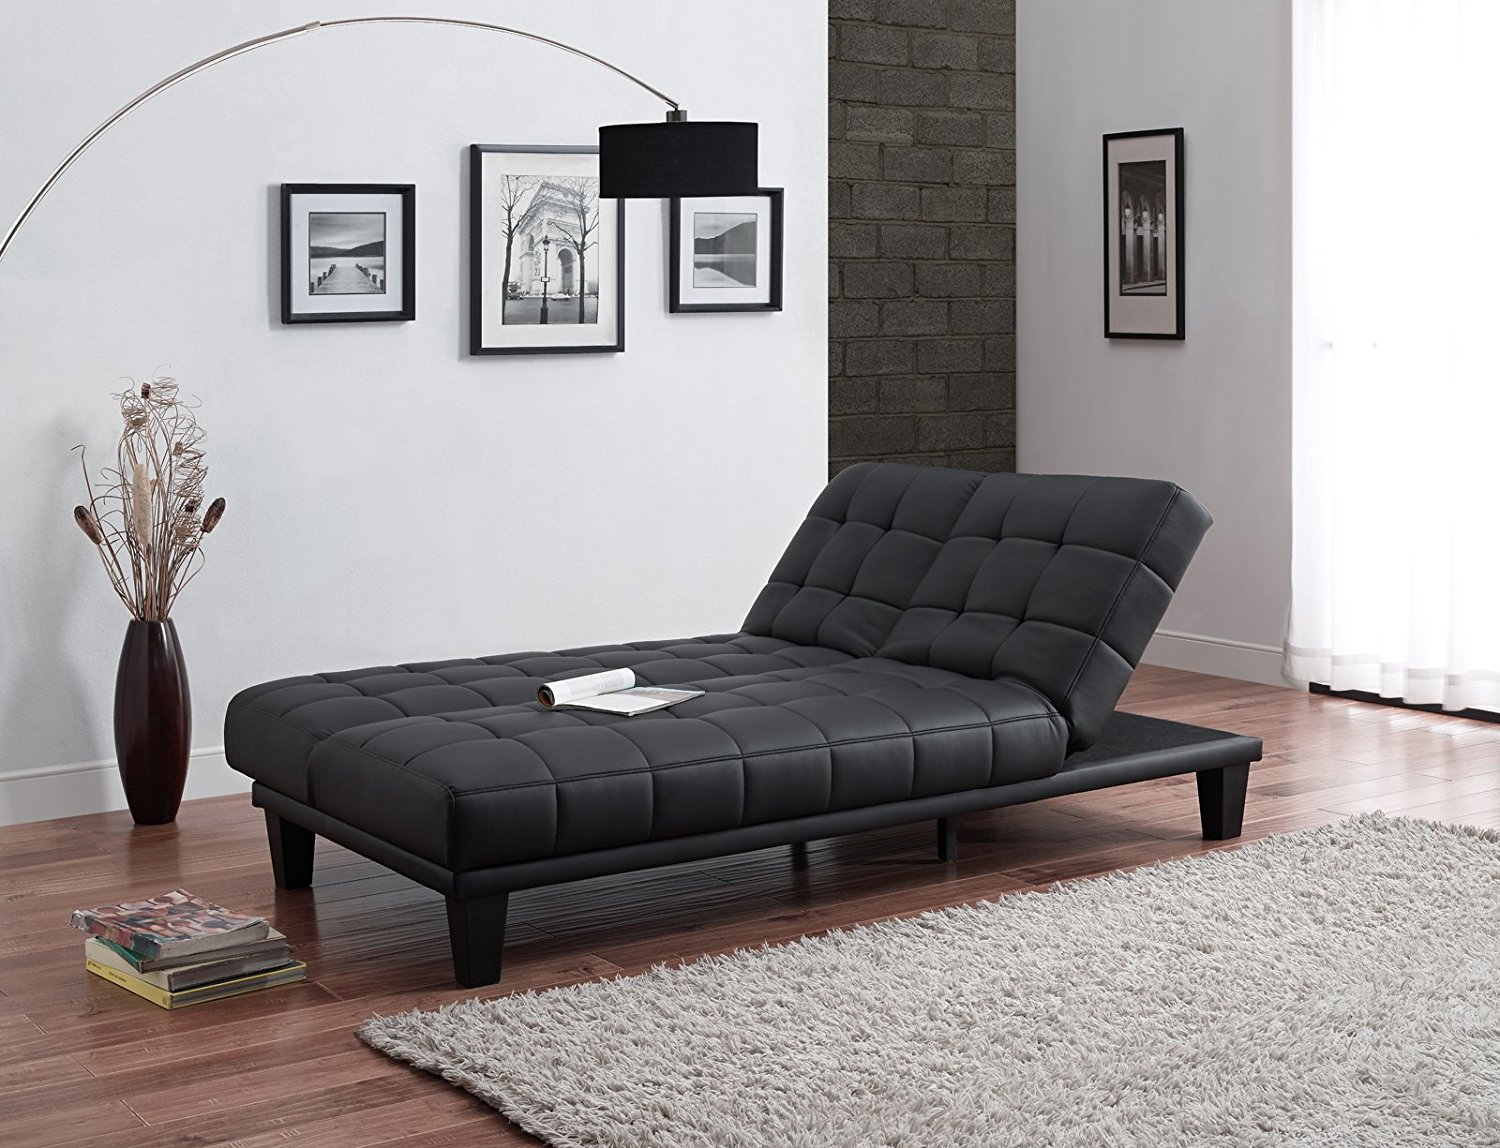 Japanese Futon Amazon Bed